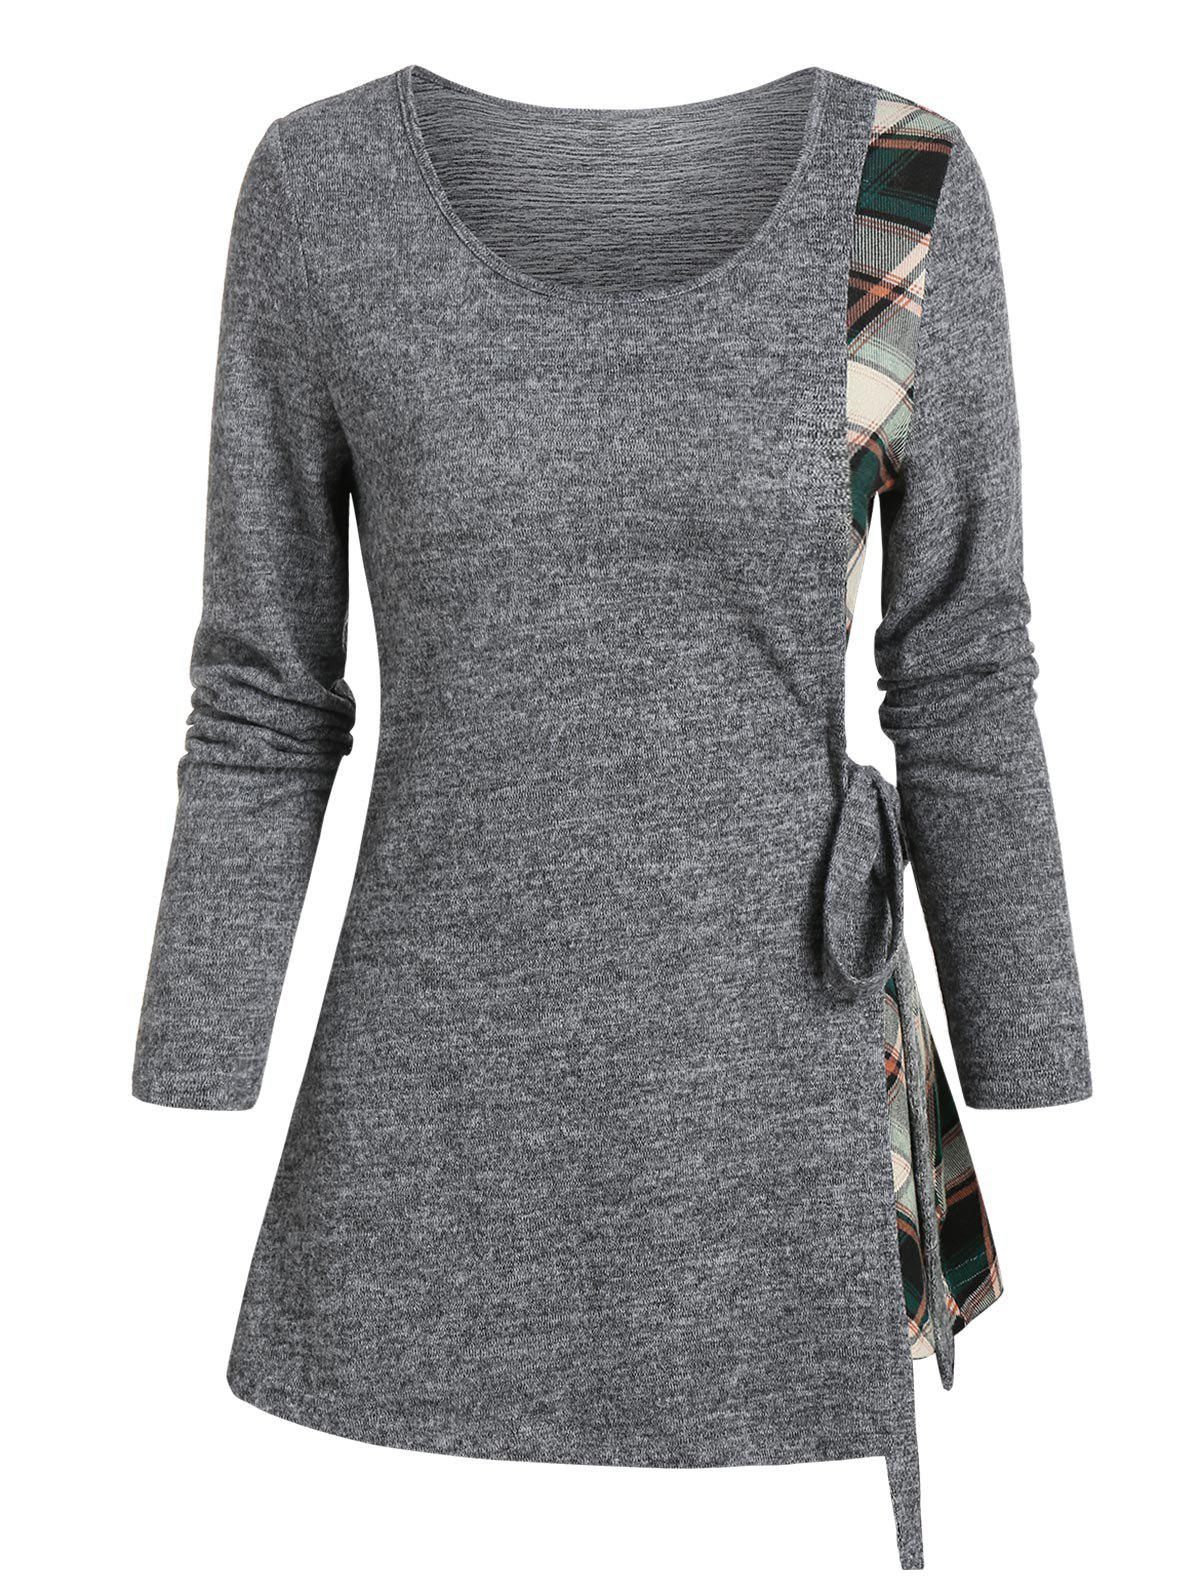 Plaid Insert Long Sleeve Knotted T-shirt - ASH GRAY L